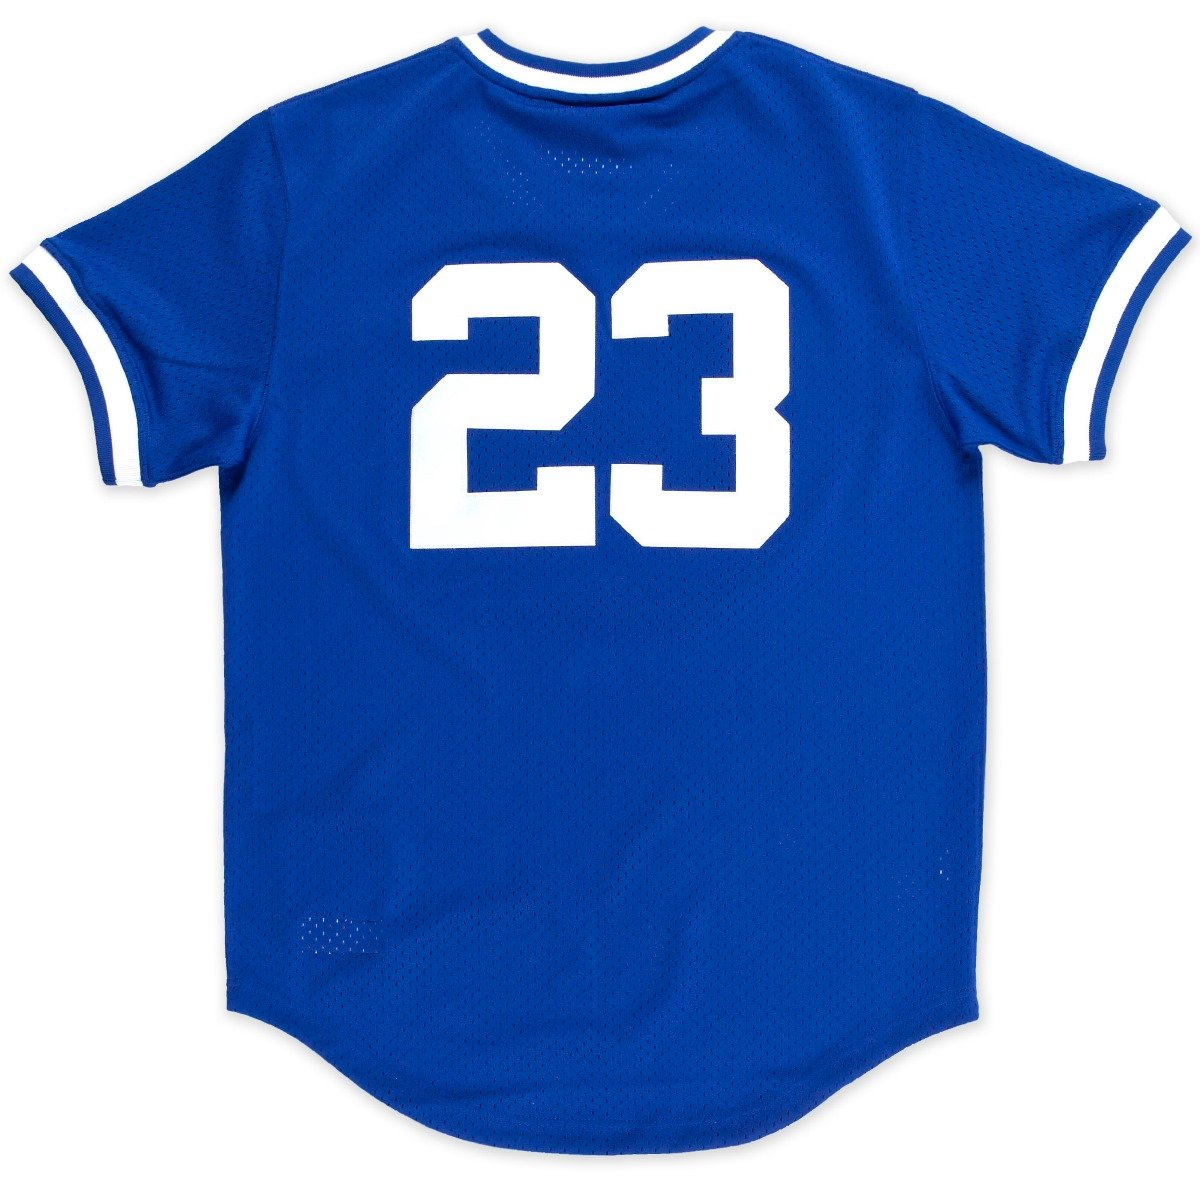 new products 6fcf2 7fe0e Mitchell & Ness Ryne Sandberg Blue Chicago Cubs Authentic Mesh Batting  Practice Jersey